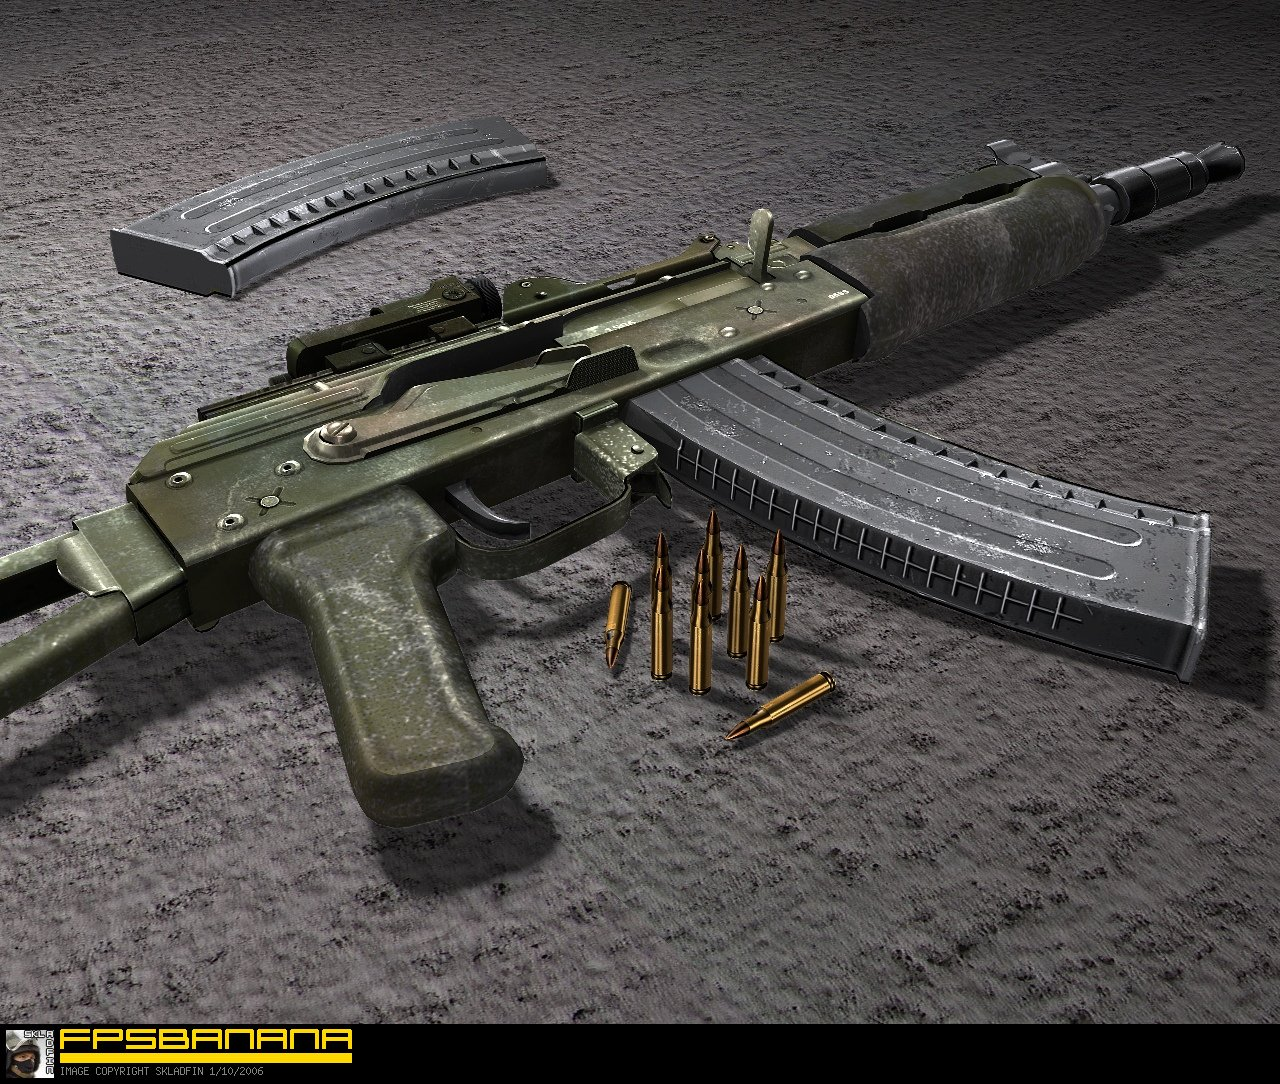 Battlefield2 AKS-74U - Special Forces Use